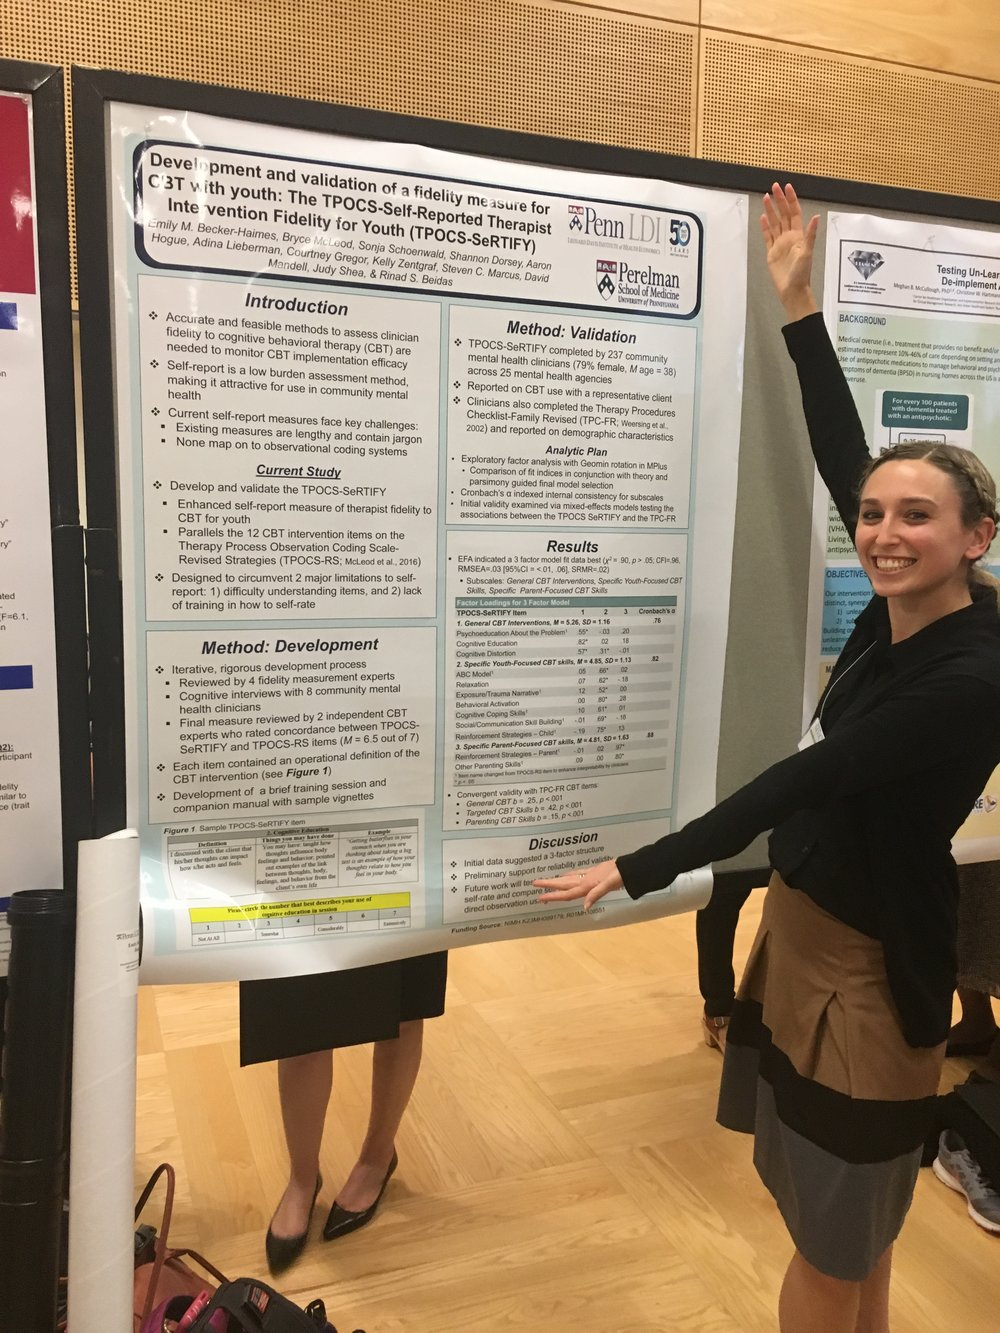 Emily Becker-Haimes presenting her poster on TPOCS-SeRTIFY at the Society for Implementation Research Collaboration (SIRC) Conference in September 2017